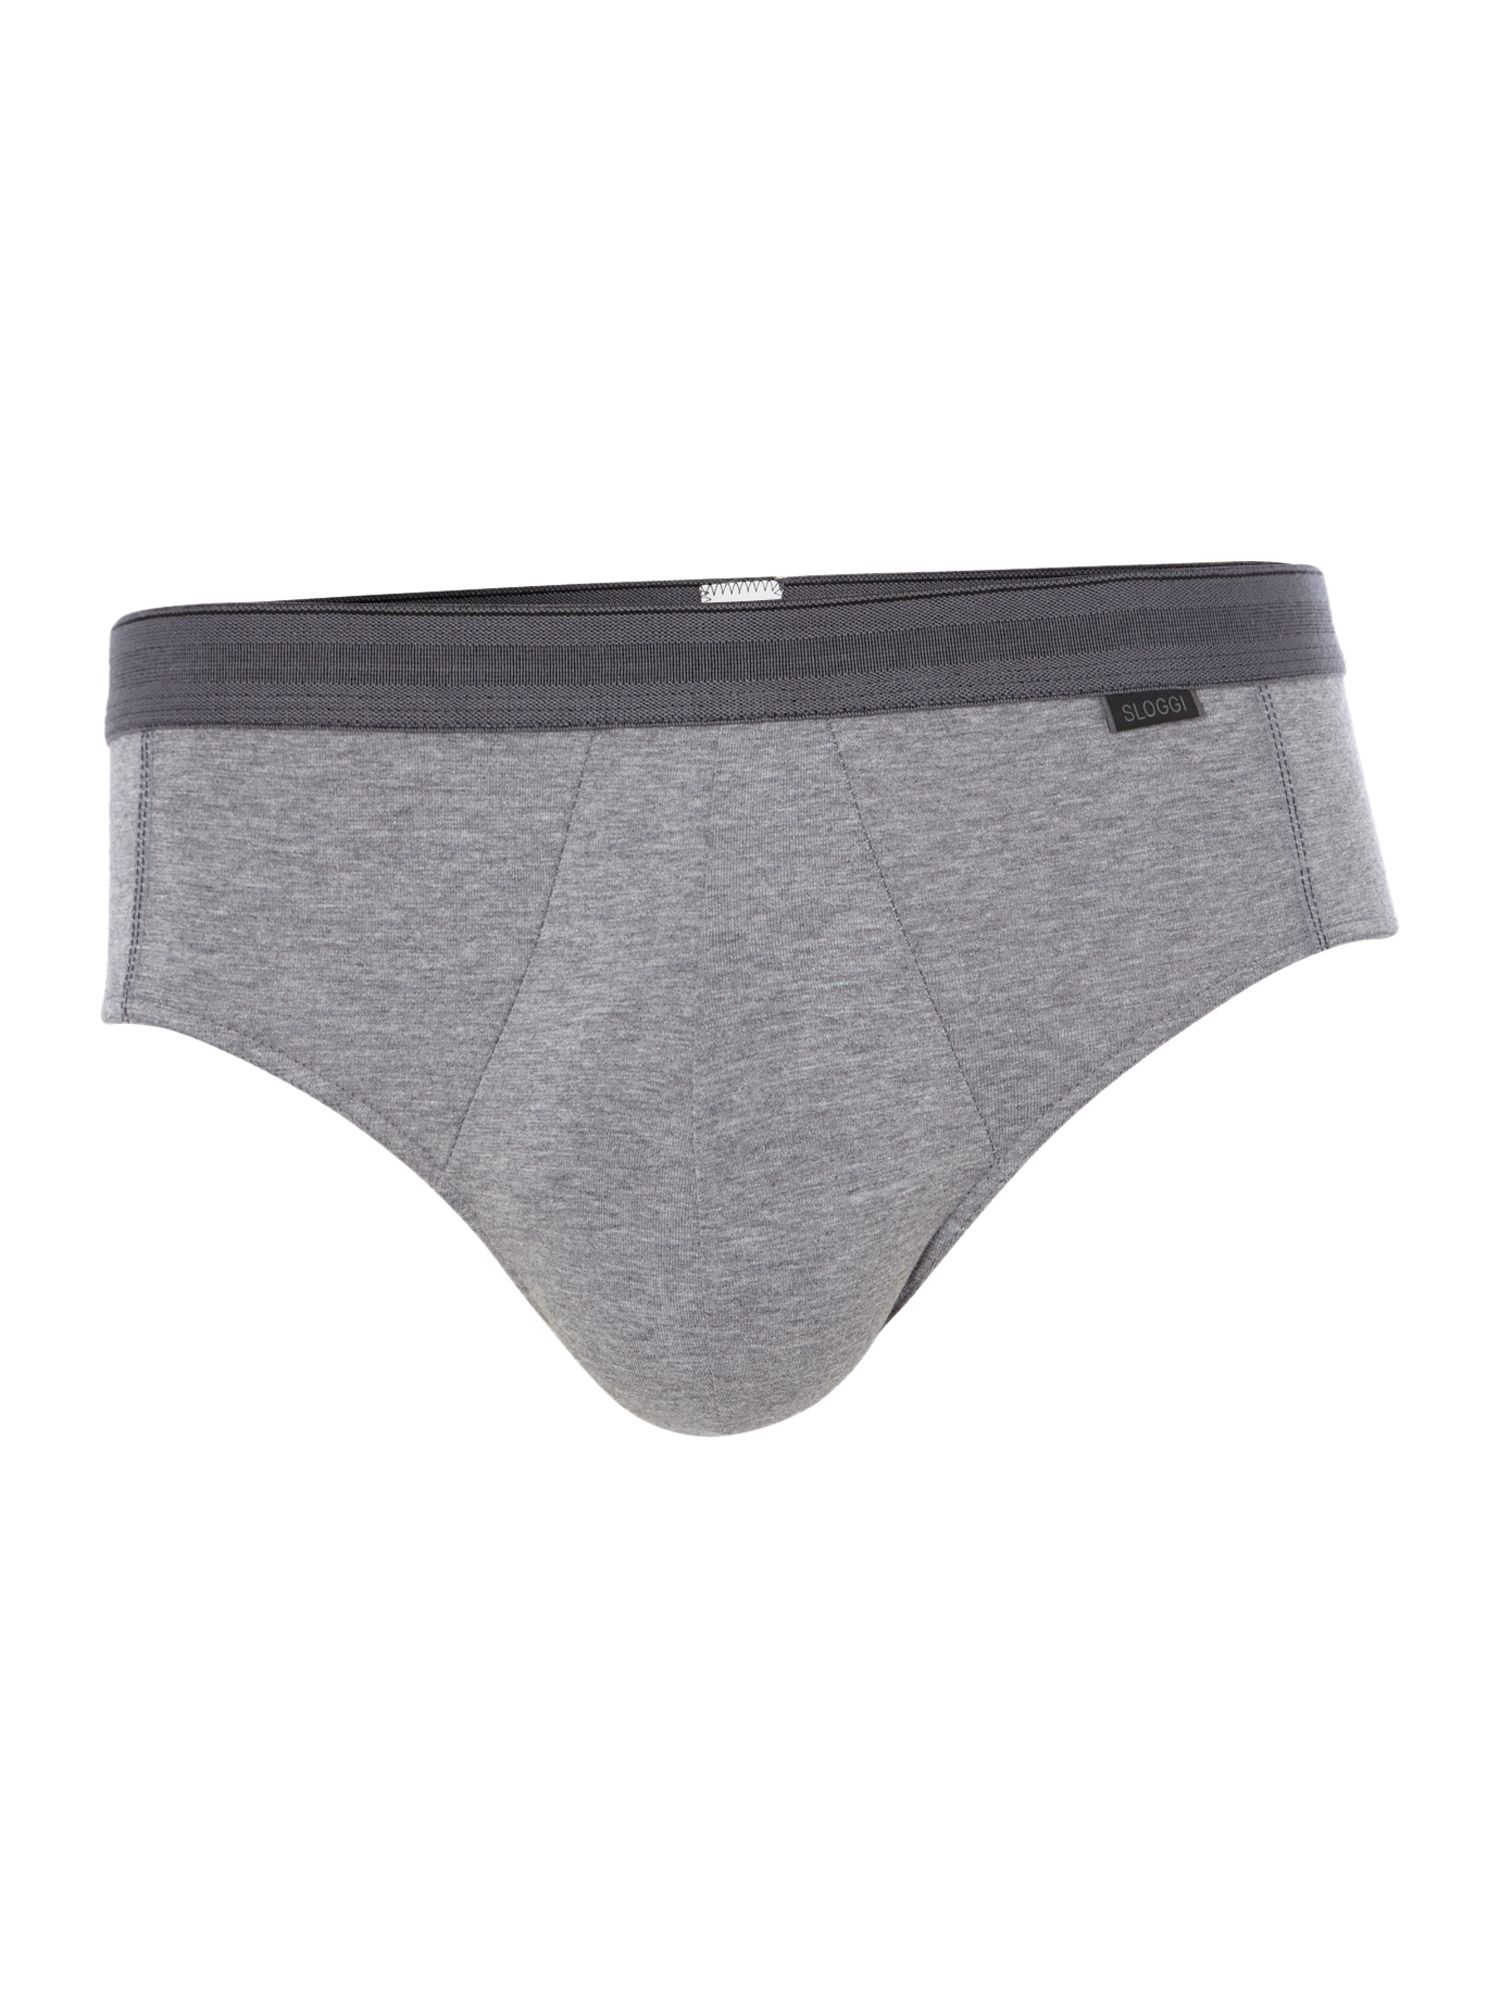 Spirit midi underwear trunk